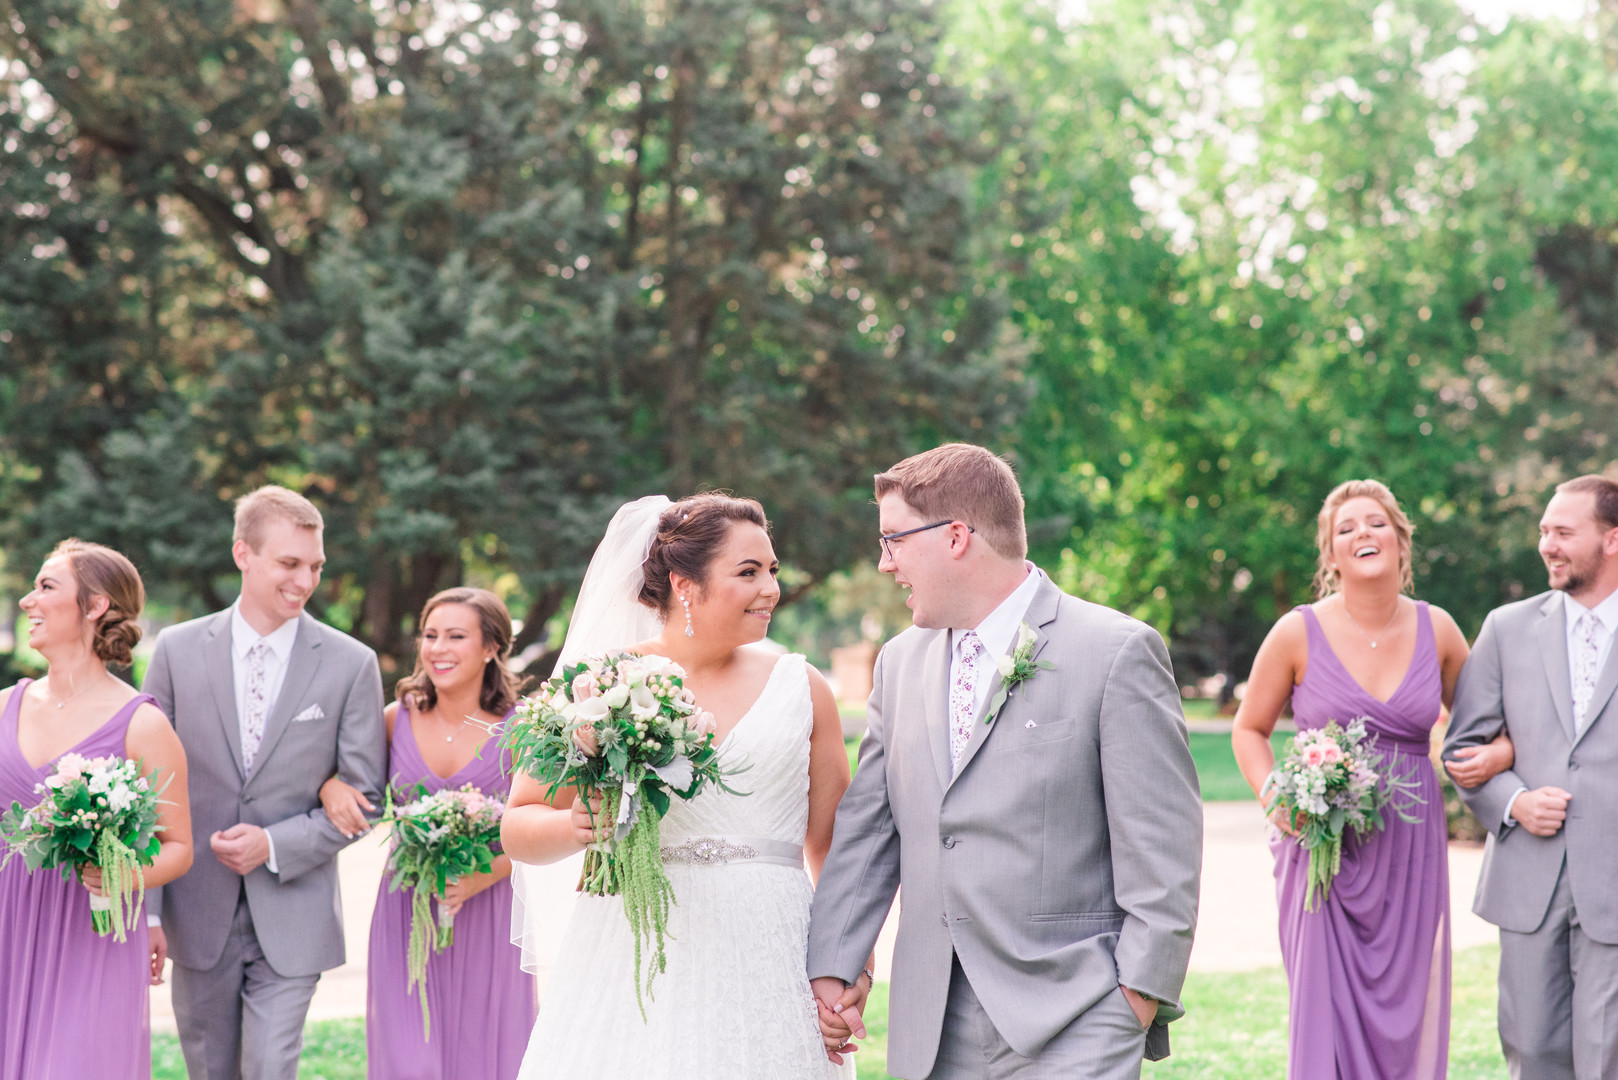 Summer mansion Chicago wedding captured by Mindy Leigh Photography. See more summer wedding ideas at CHItheeWED.com!